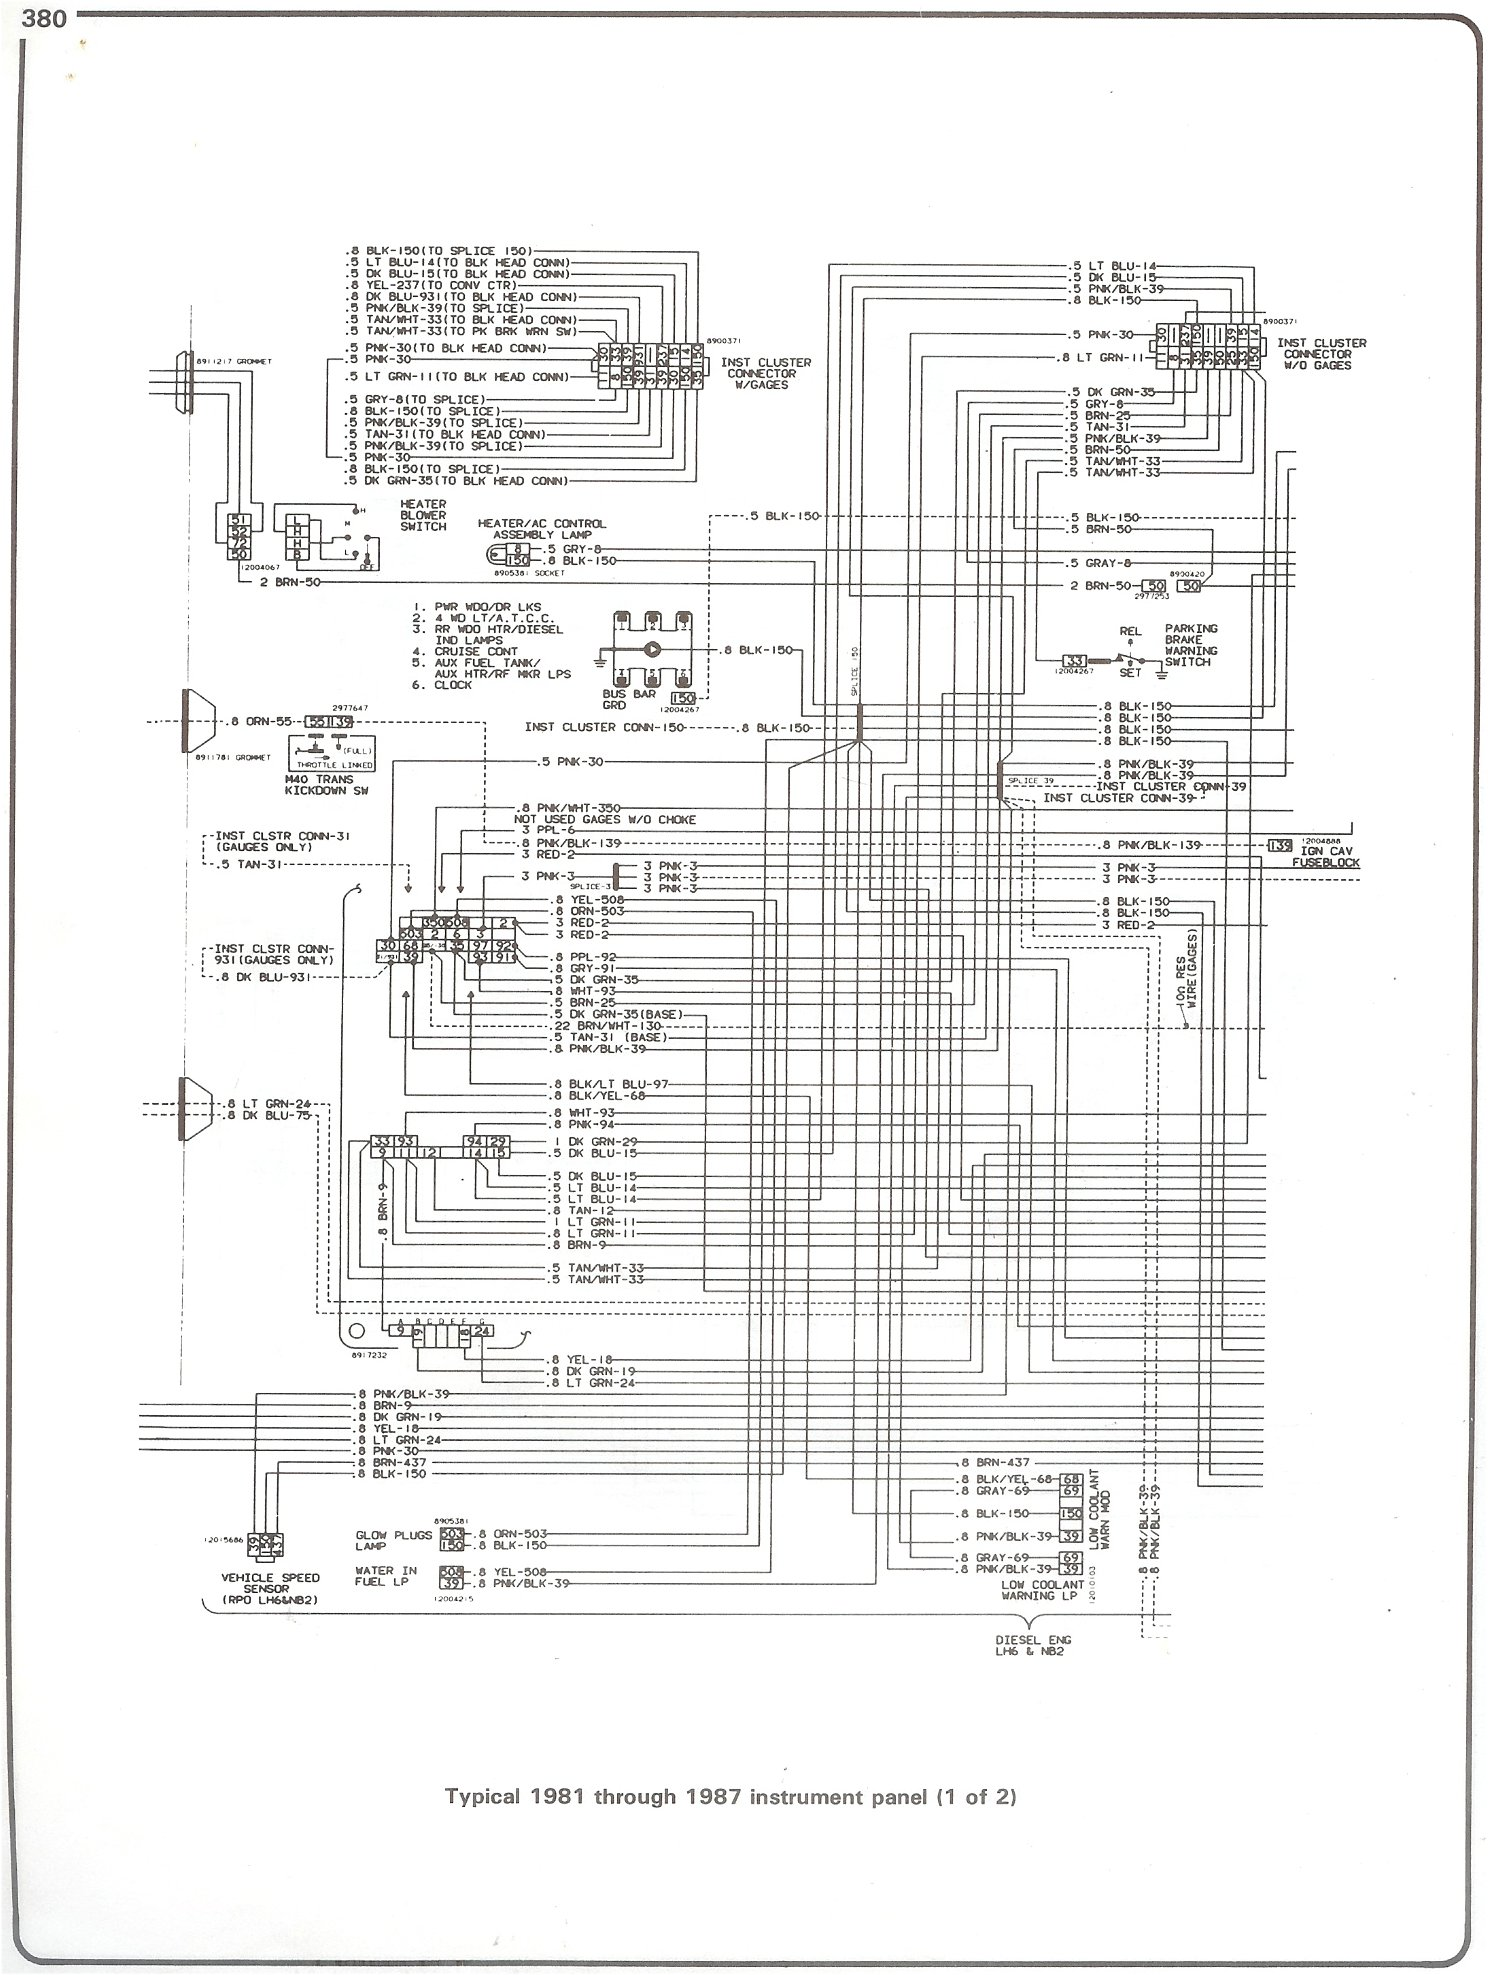 1974 Chevy Pickup Wiring - Diagram Schematic Ideas on